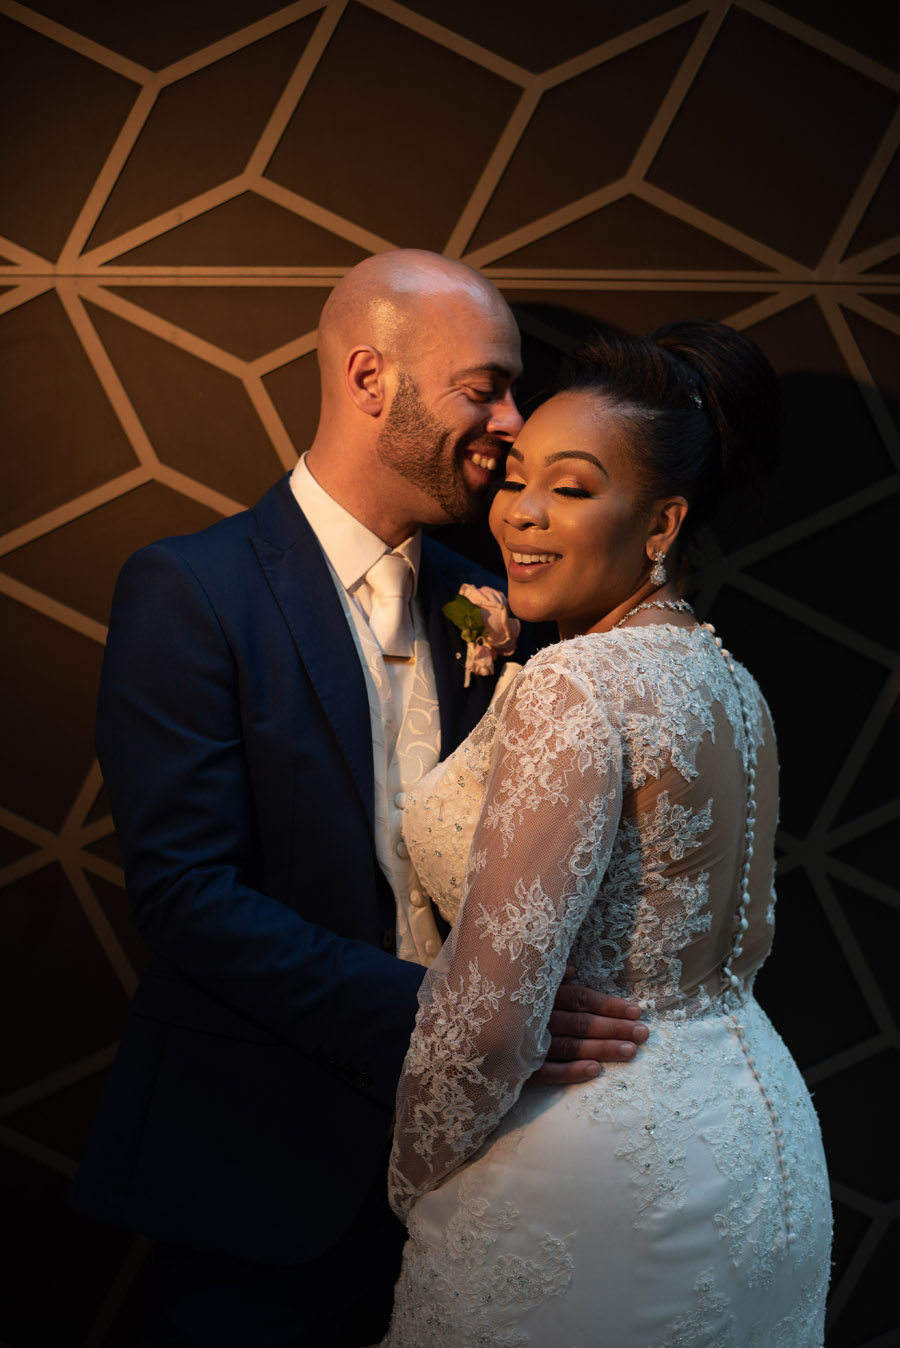 Chantel & Andrew's chic, modern and timeless wedding at Devonshire Terrace, with Carla Thomas Photography (37)